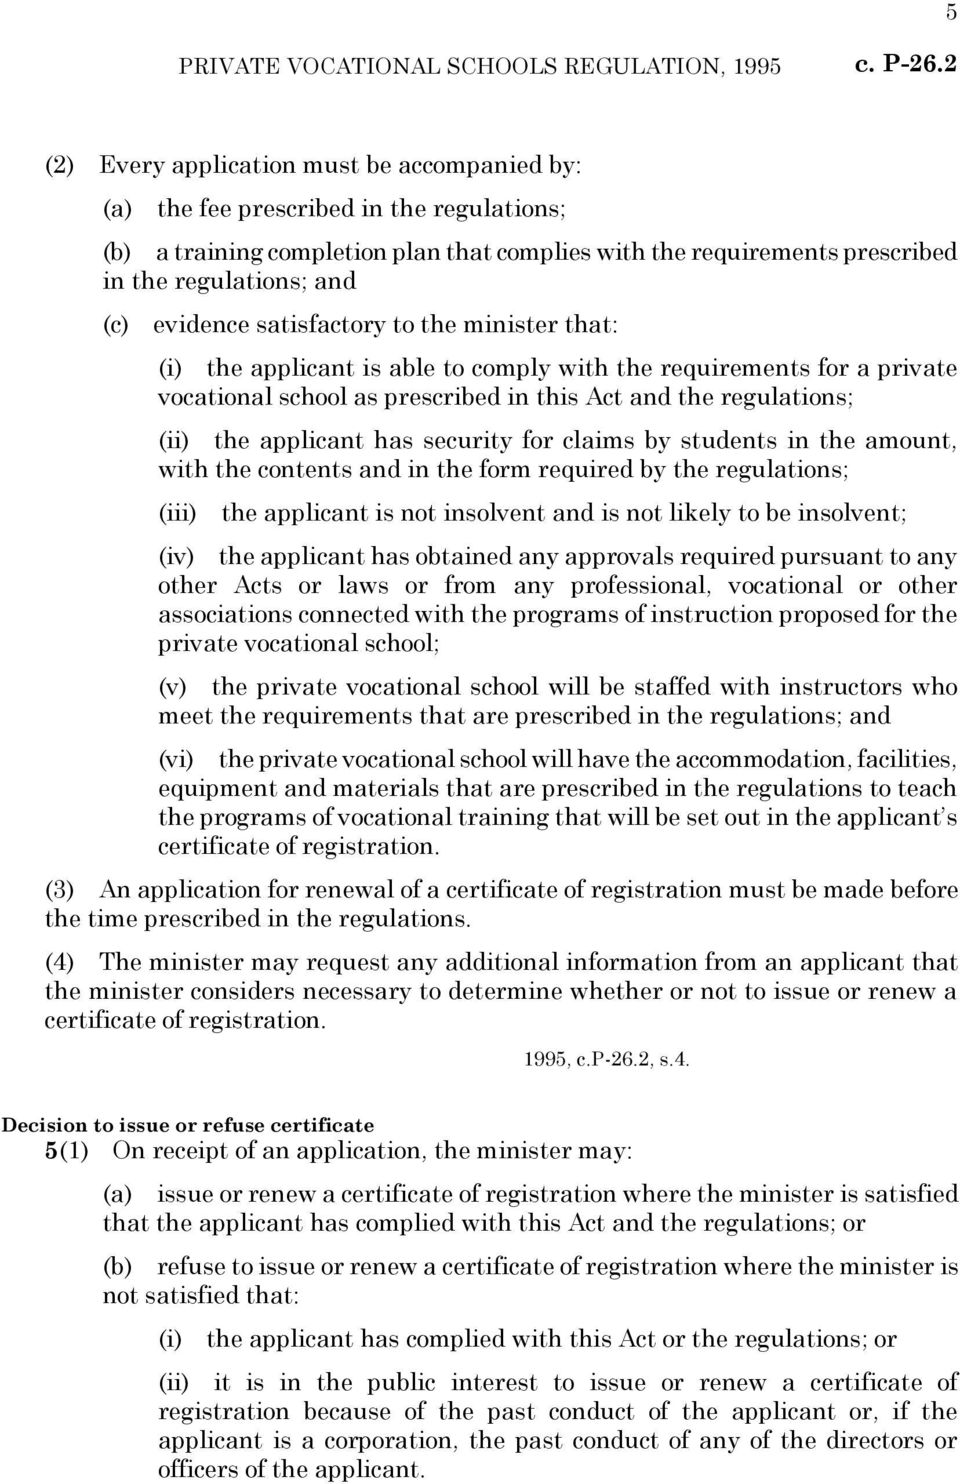 evidence satisfactory to the minister that: (i) the applicant is able to comply with the requirements for a private vocational school as prescribed in this Act and the regulations; (ii) the applicant